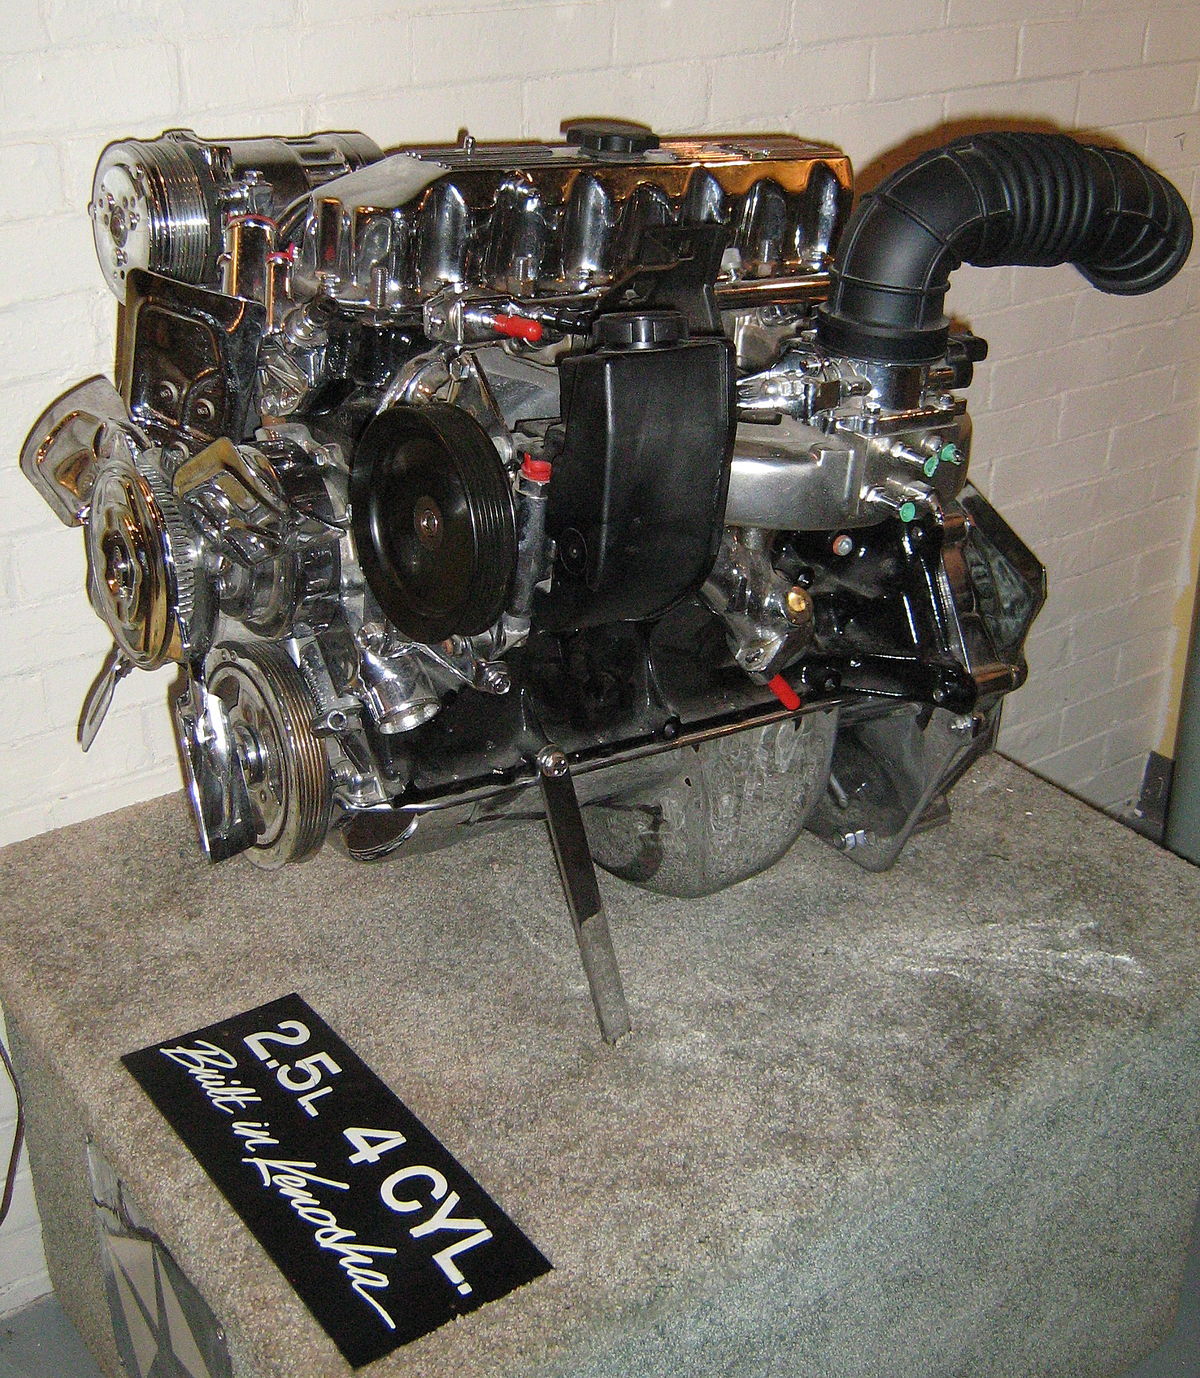 amc straight 4 engine wikipedia rh en wikipedia org Chevy 2.2 Engine Diagram  Chevy 4 3 V6 Engine Head Diagram